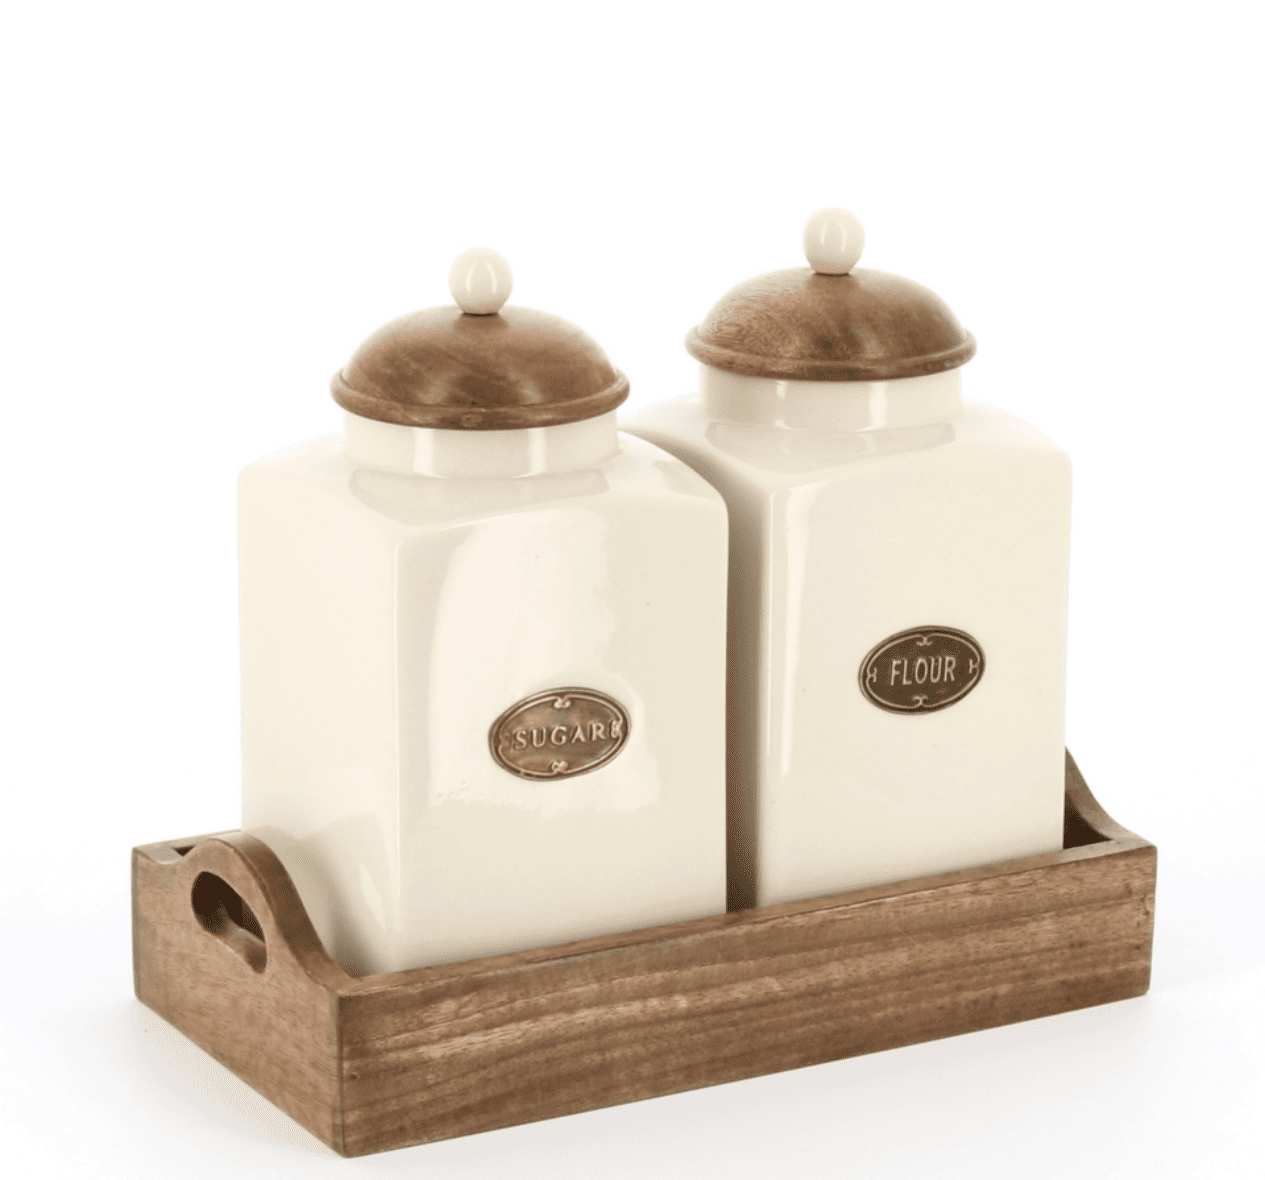 Country kitchen large sugar and flour set in wooden tray, wooden lids with ceramic knobs side view